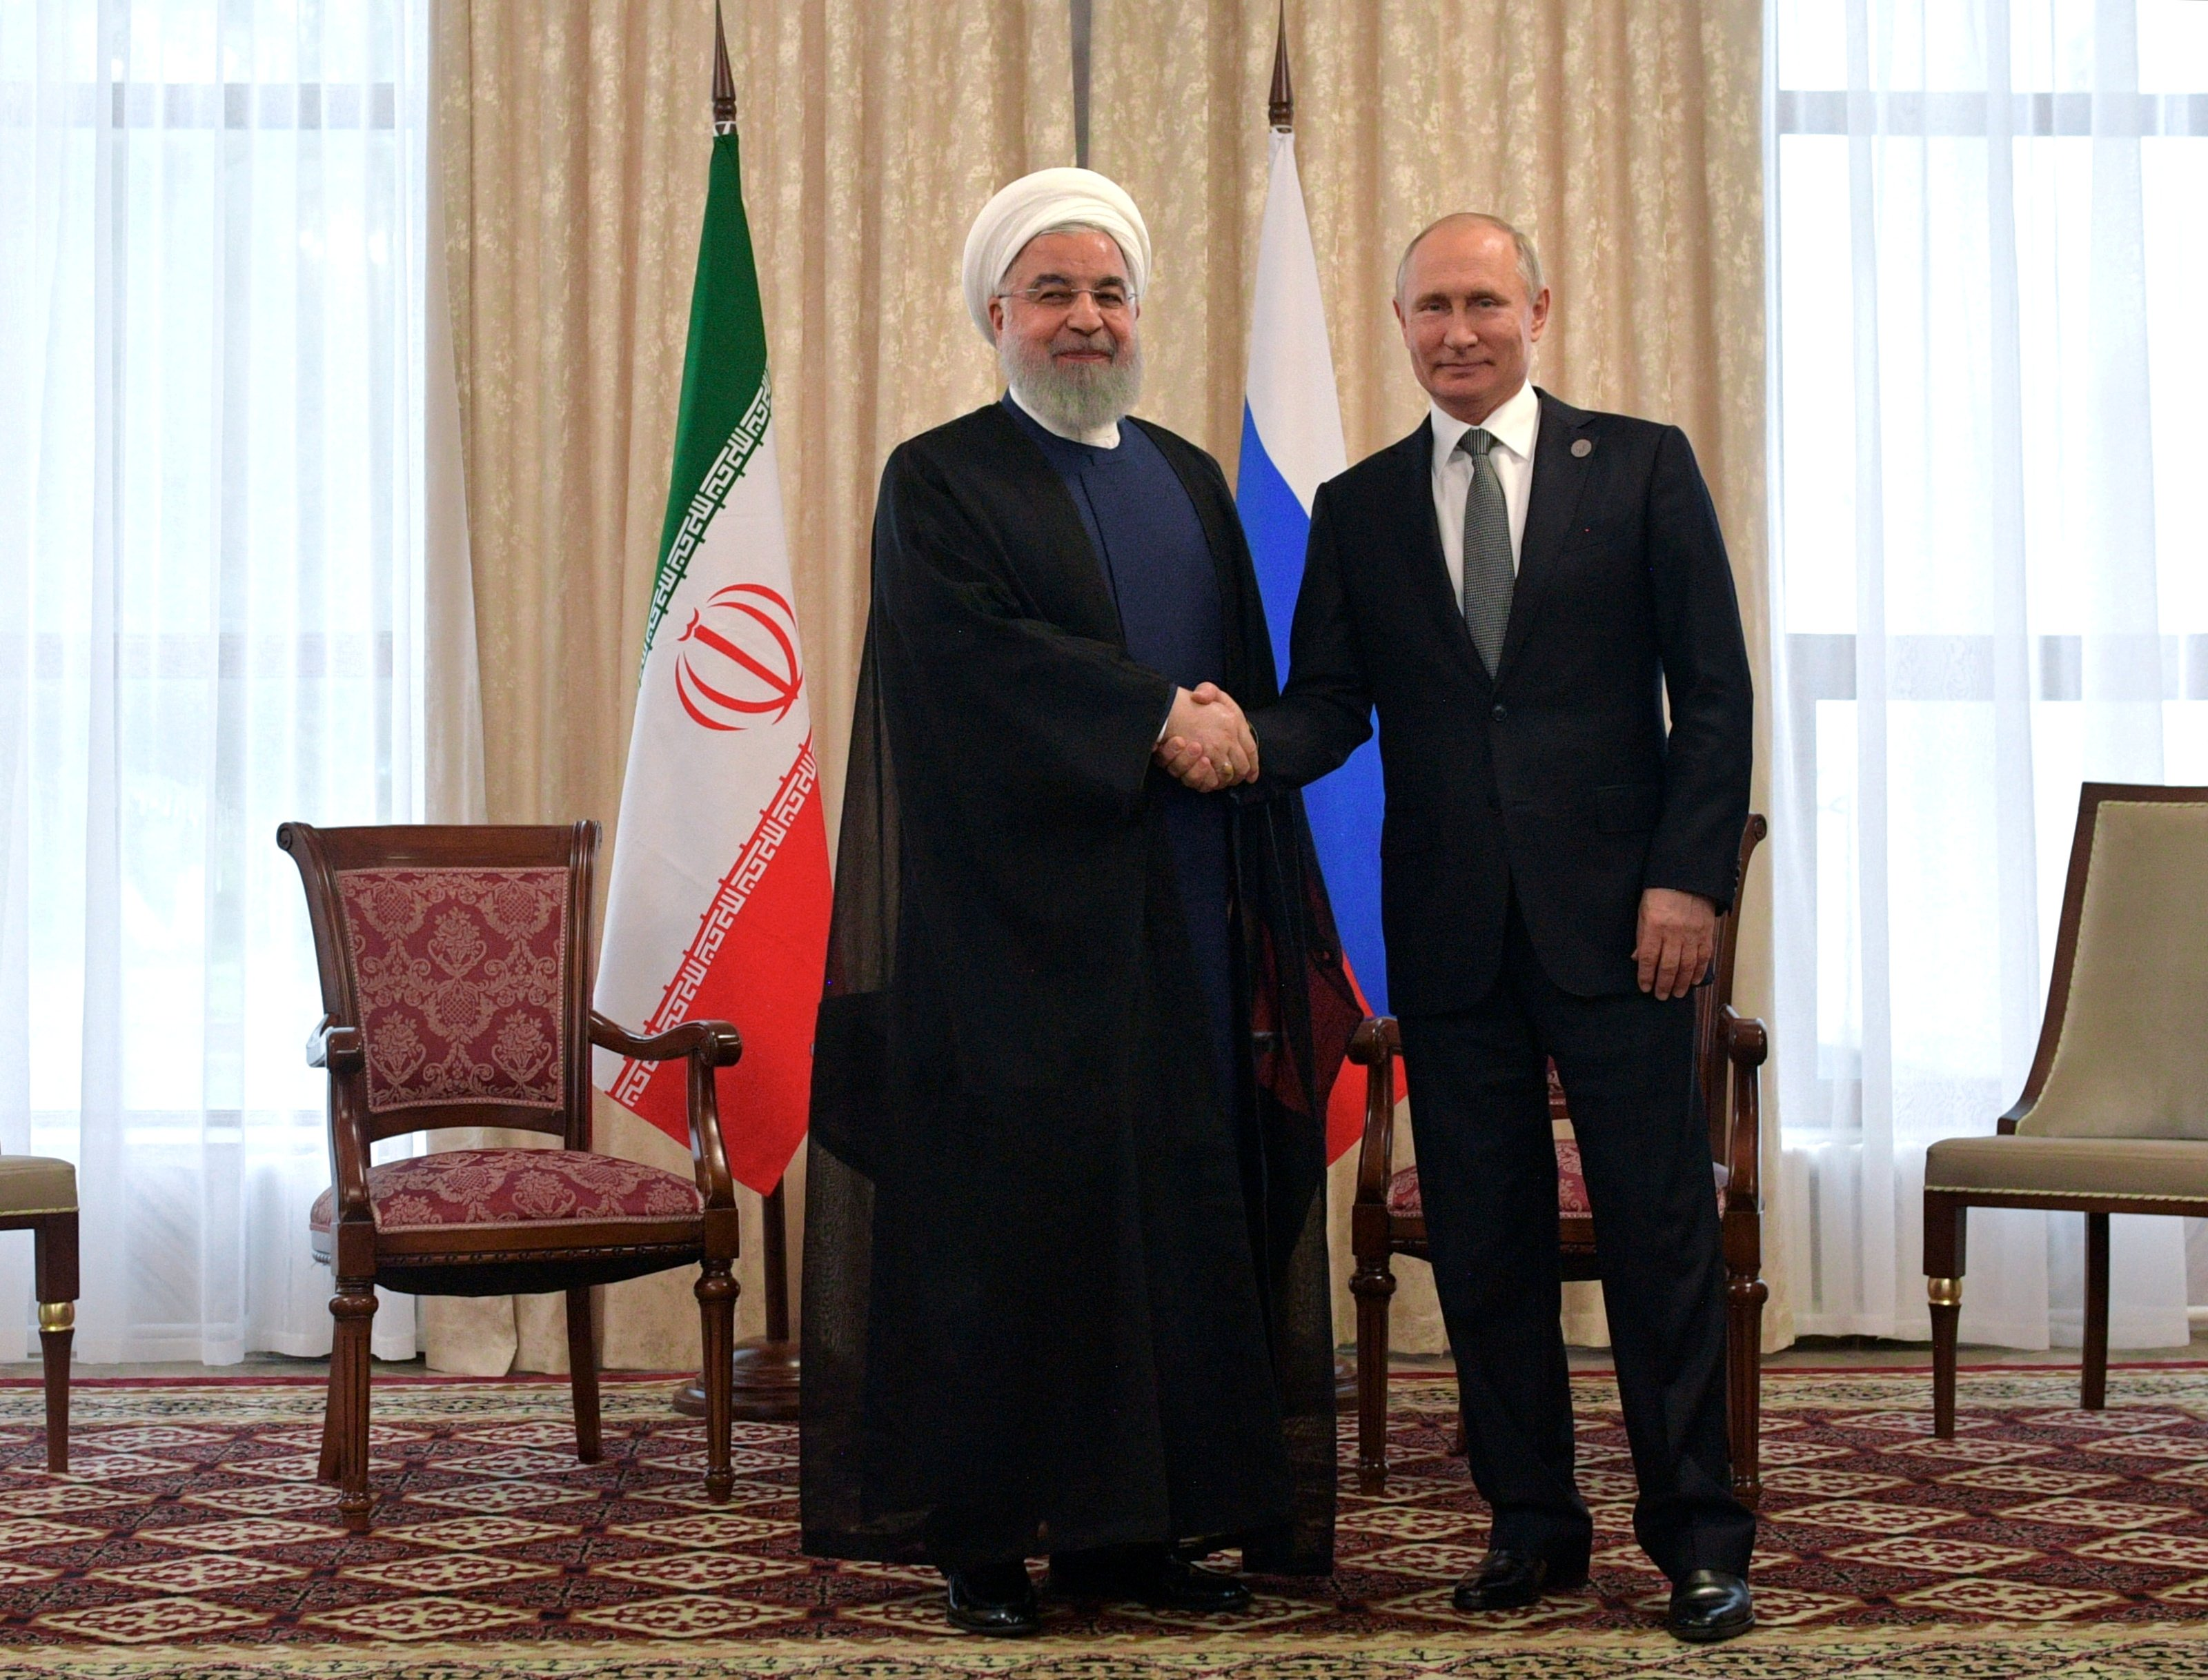 Russia's President Vladimir Putin and Iran's President Hassan Rouhani attend a meeting on the sidelines of the Shanghai Cooperation Organisation (SCO) summit in Bishkek, Kyrgyzstan June 14, 2019. Sputnik/Alexei Druzhinin/Kremlin via REUTERS